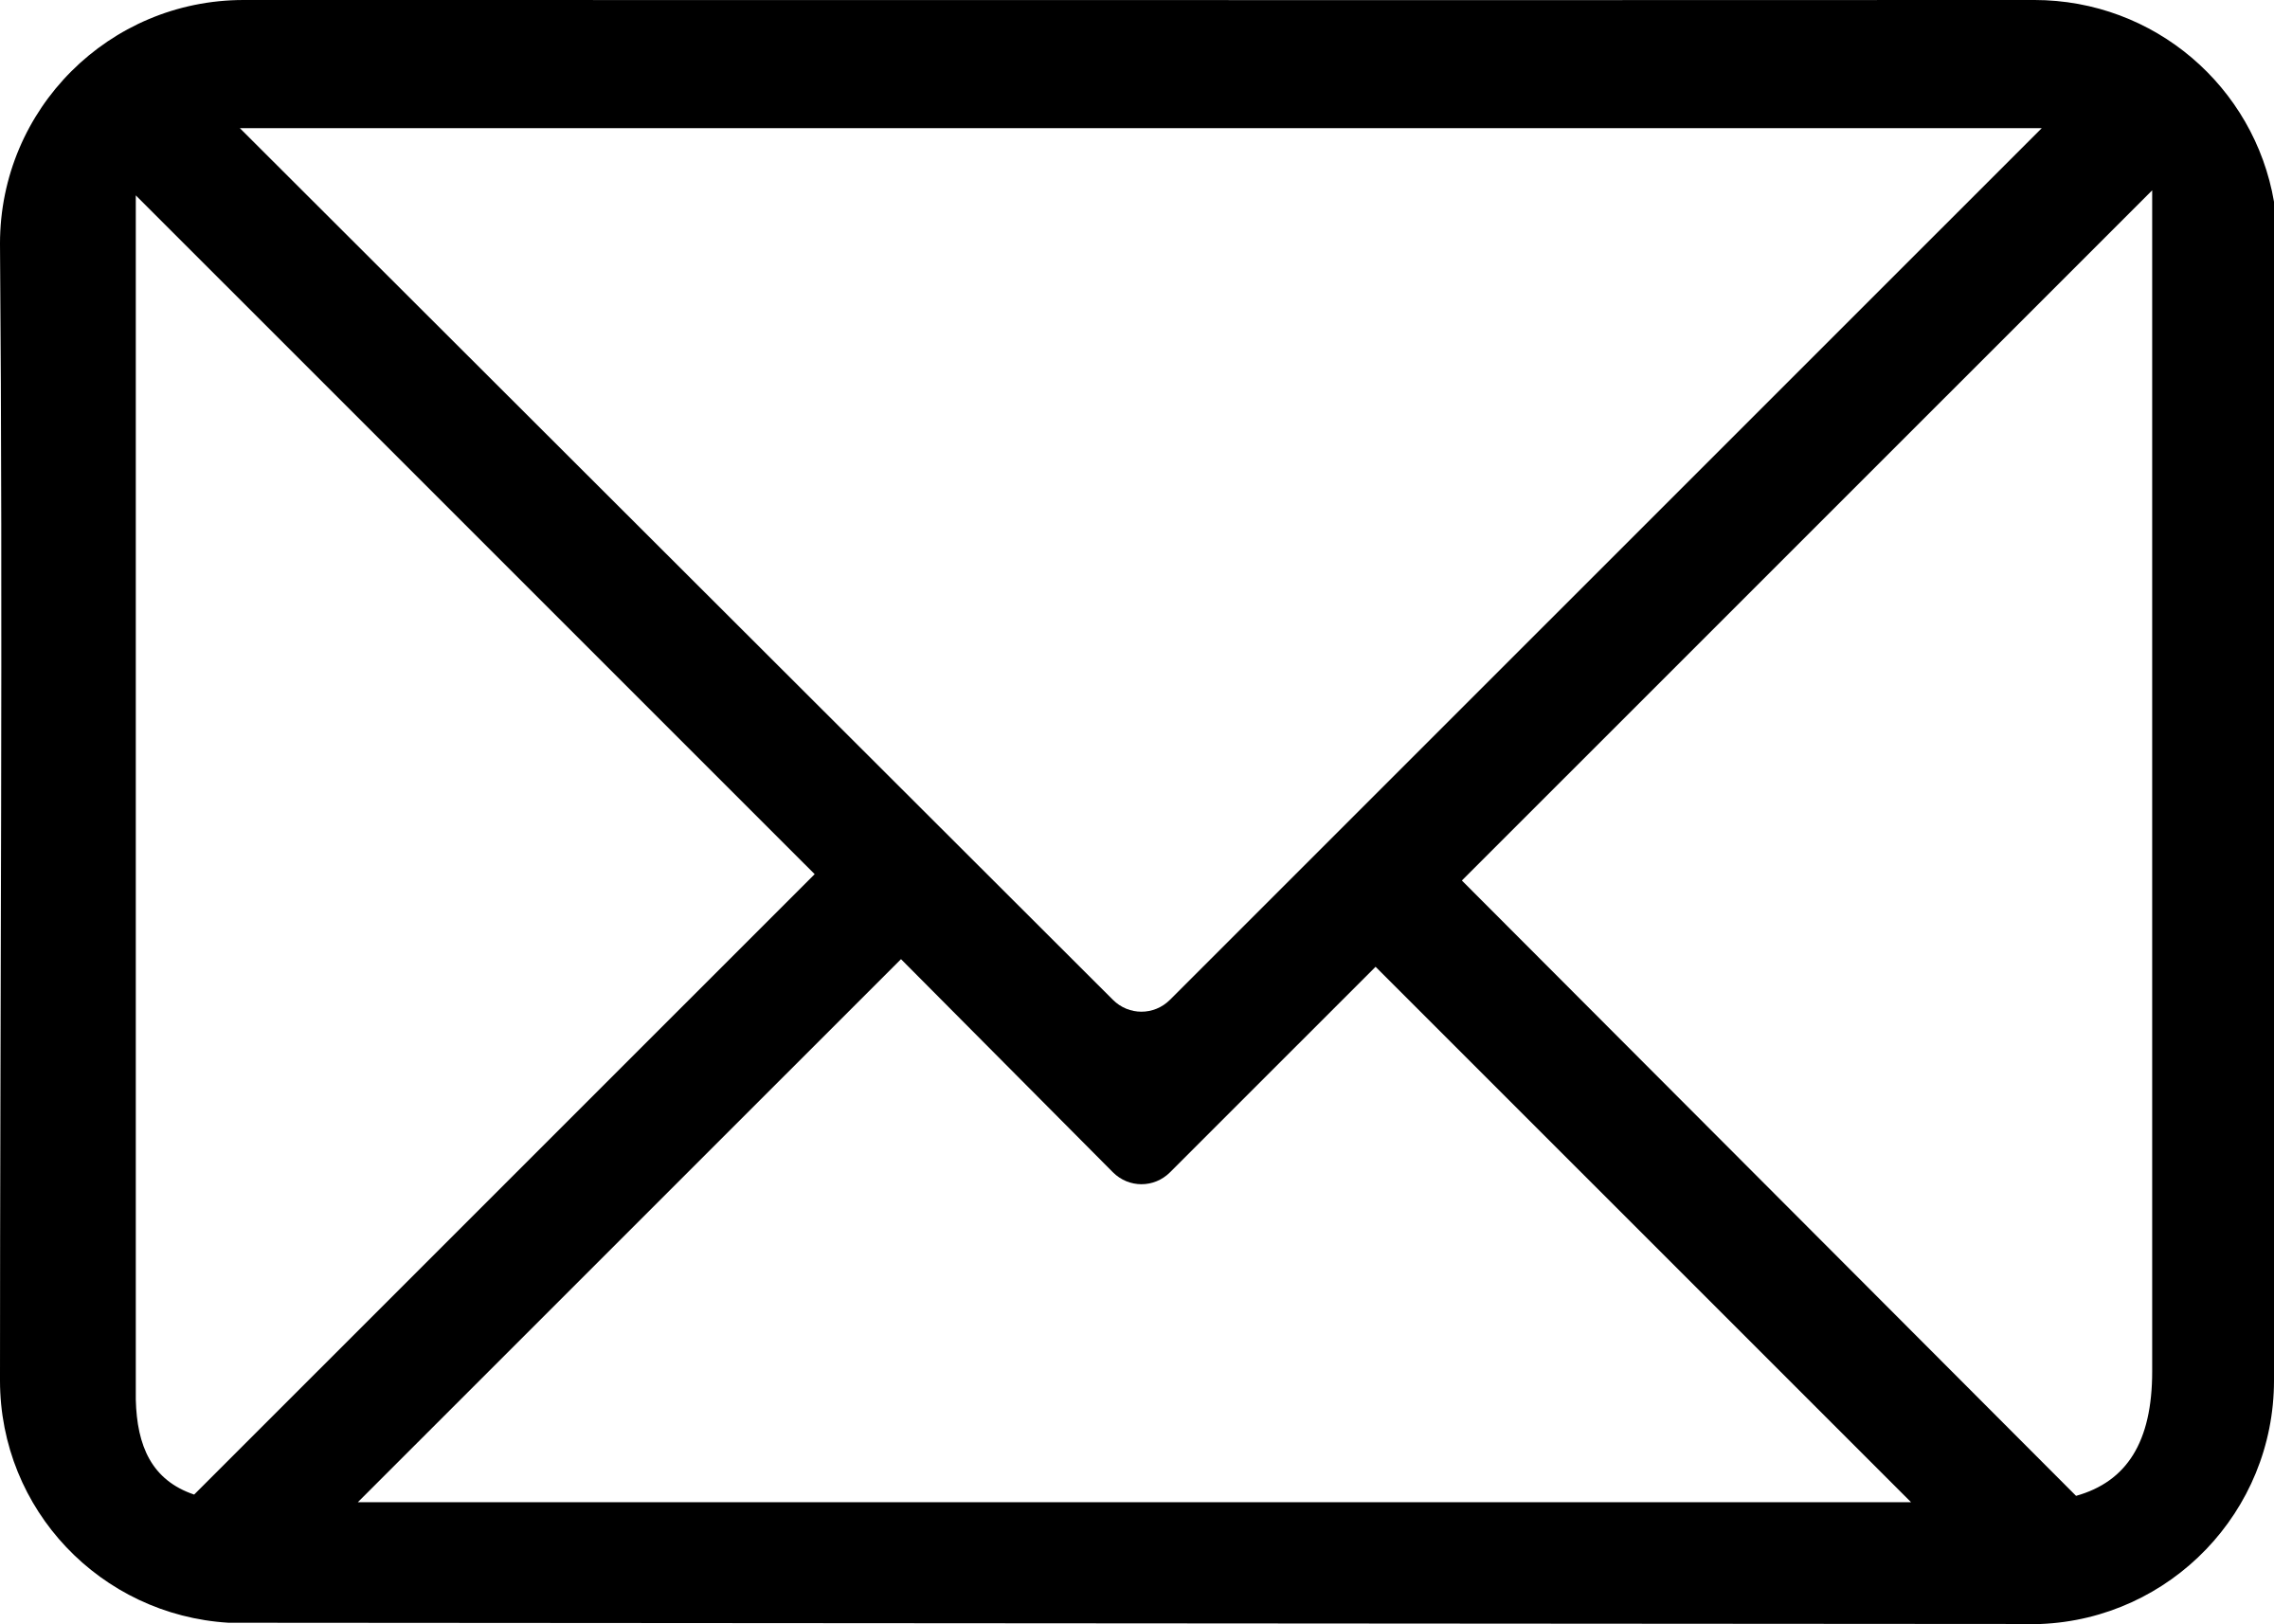 Mail clipart small icon png. Email large envelope transparent